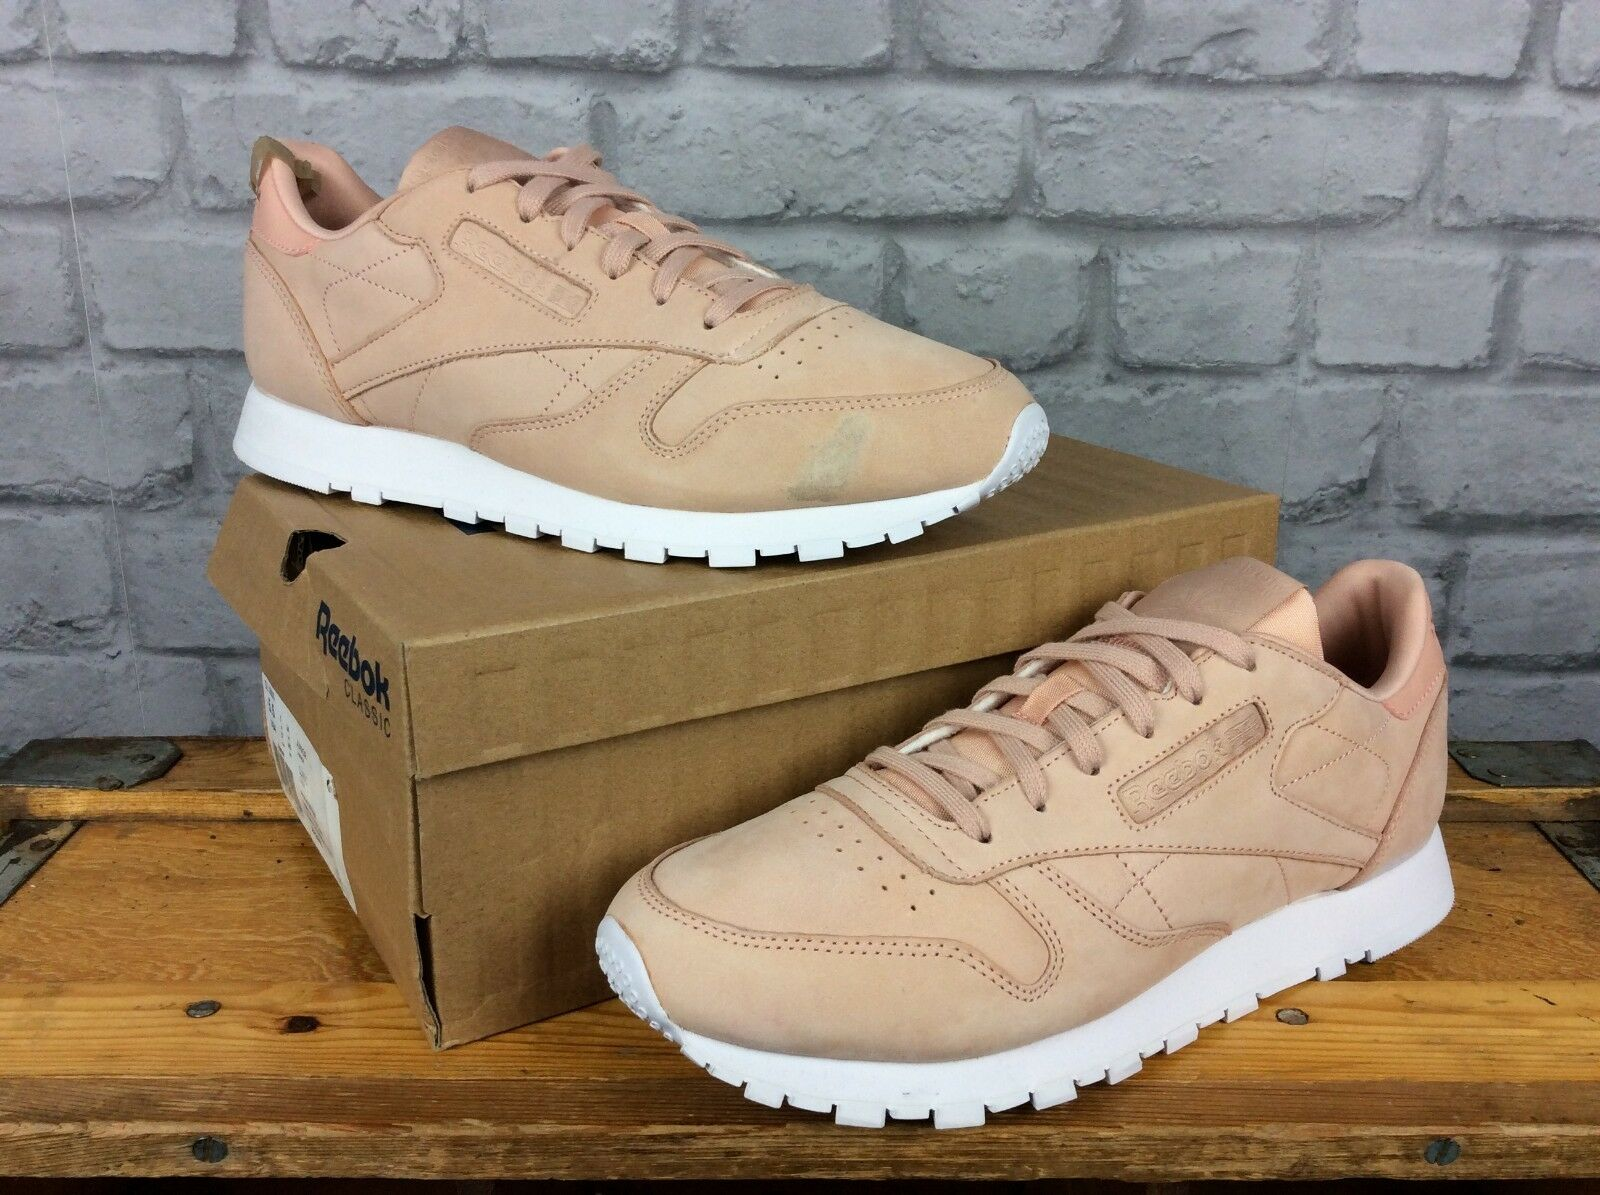 REEBOK LADIES UK 7 1/2 EU 41 NEUTRAL PINK LEATHER SUEDE SUEDE LEATHER CLASSIC TRAINERS cf6b52